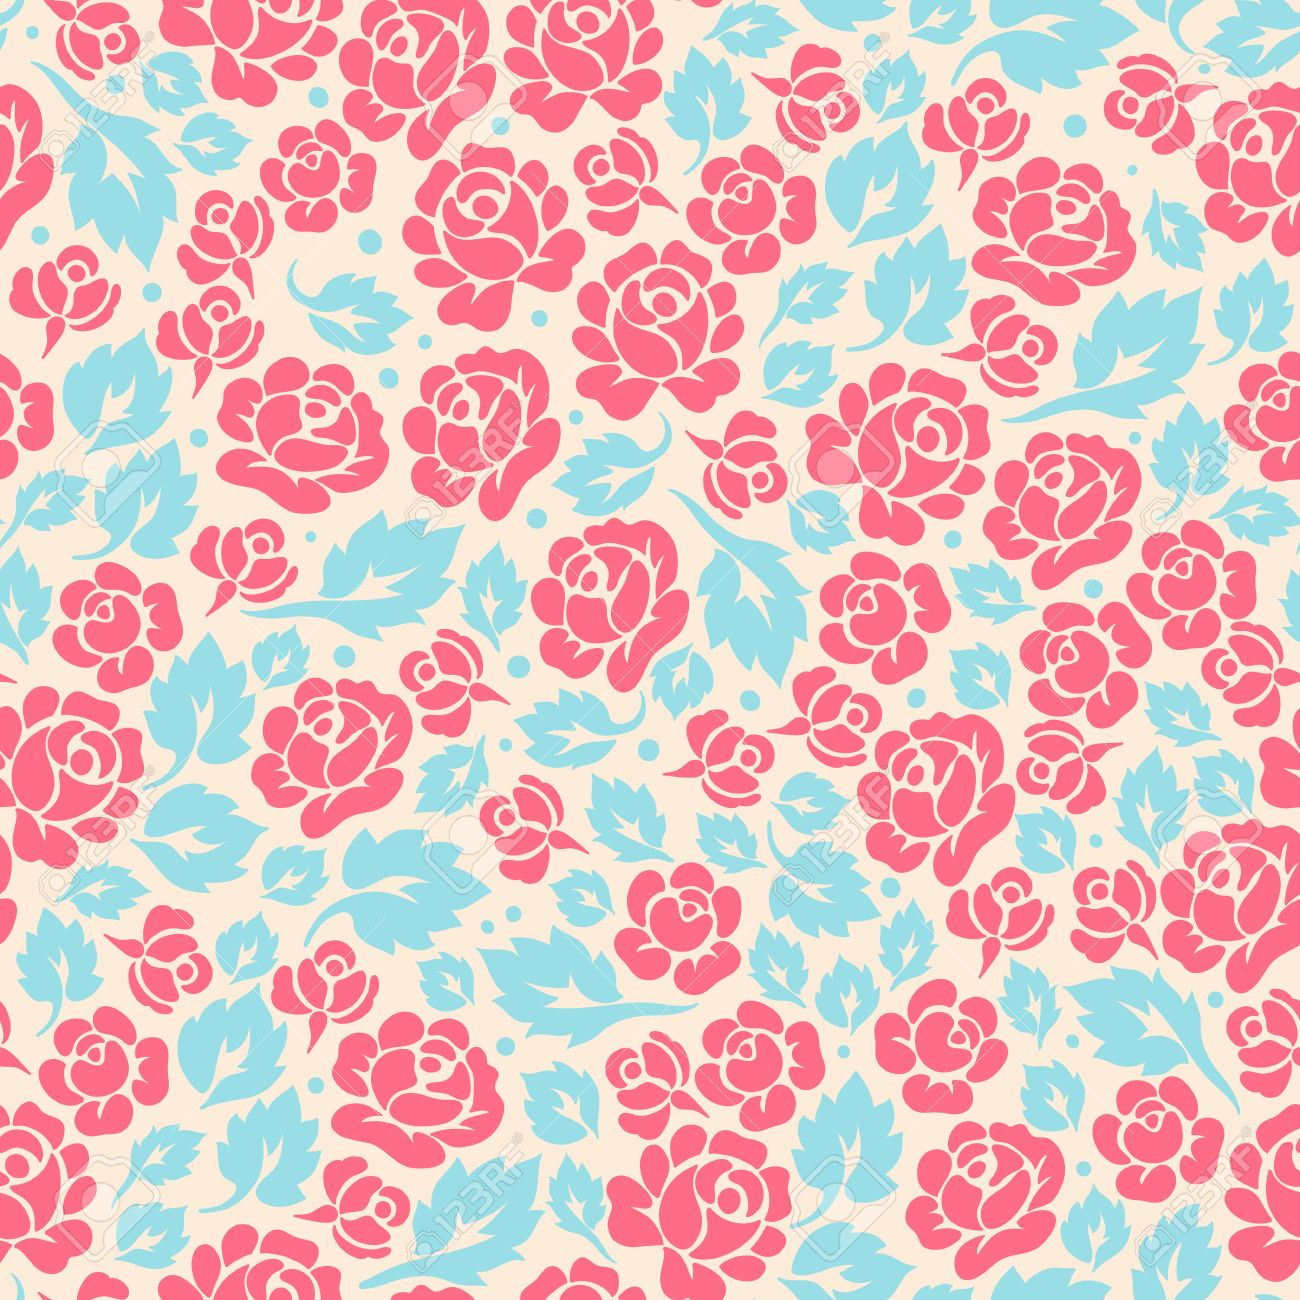 cute retro seamless pattern with rose buds and leaves - 19472826